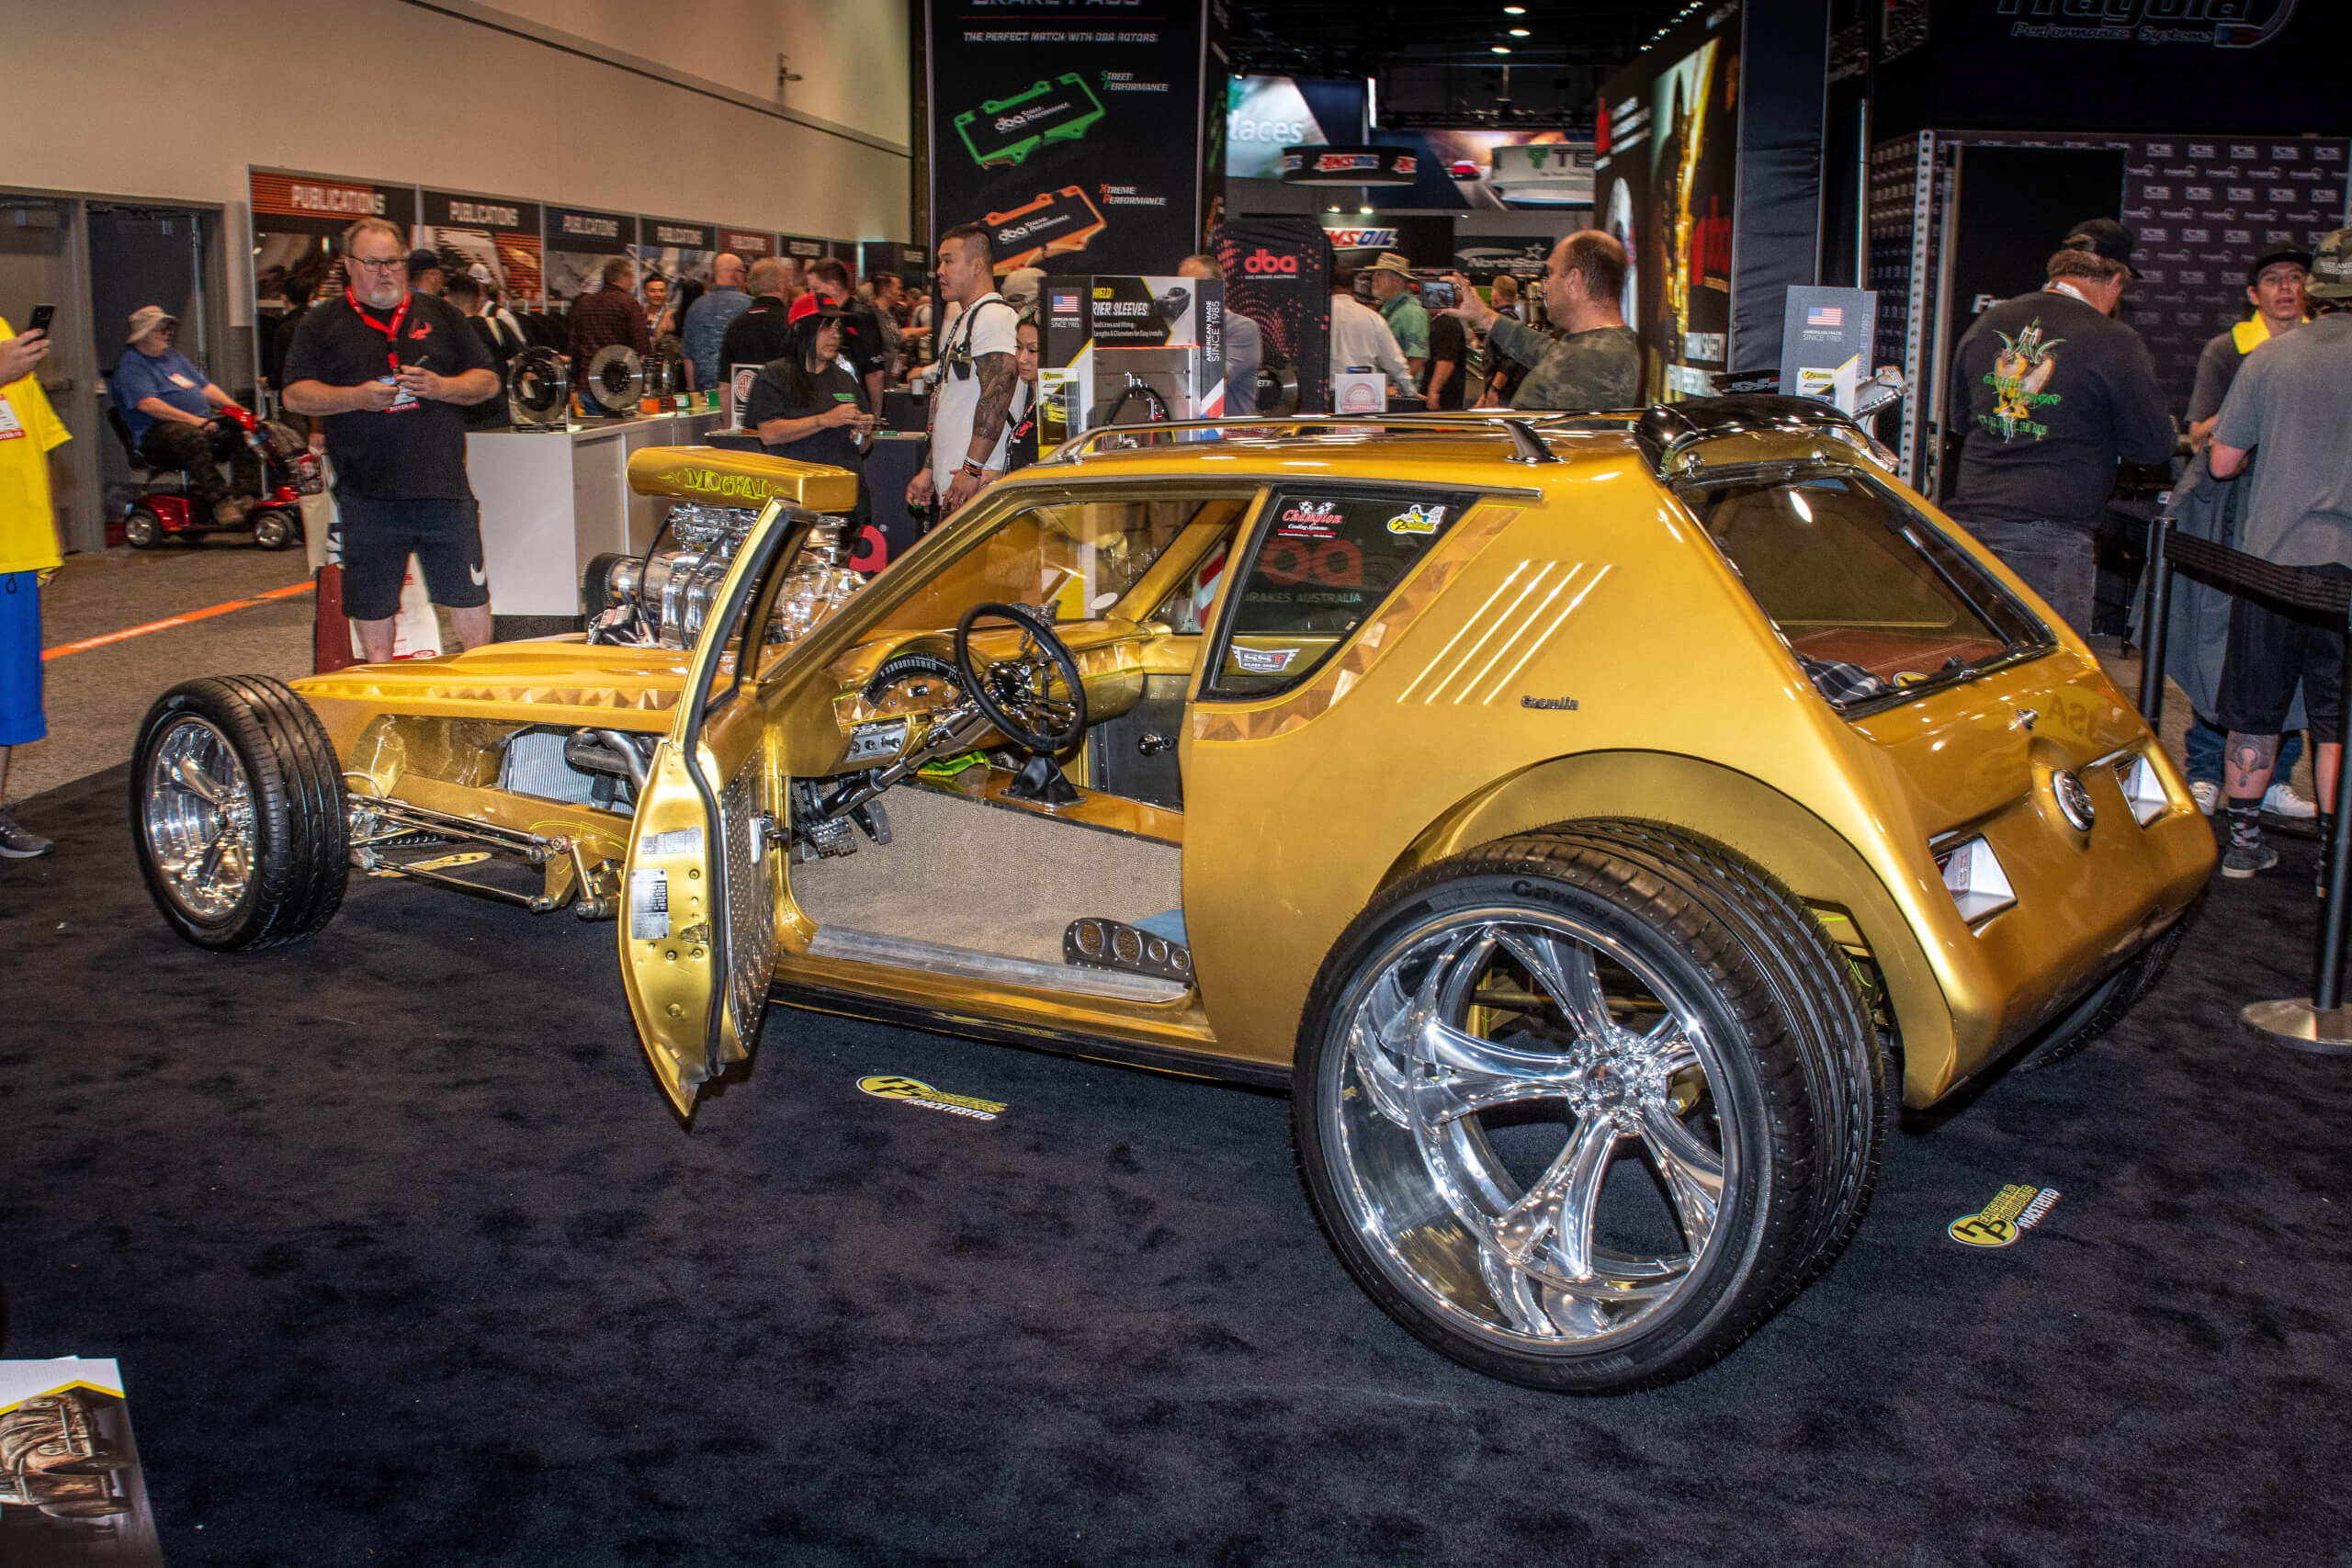 This wild 1975 AMC Gremlin features a supercharged 304ci V8, custom gold paint and a lengthened chassis. It was on display at the 2019 SEMA Show.